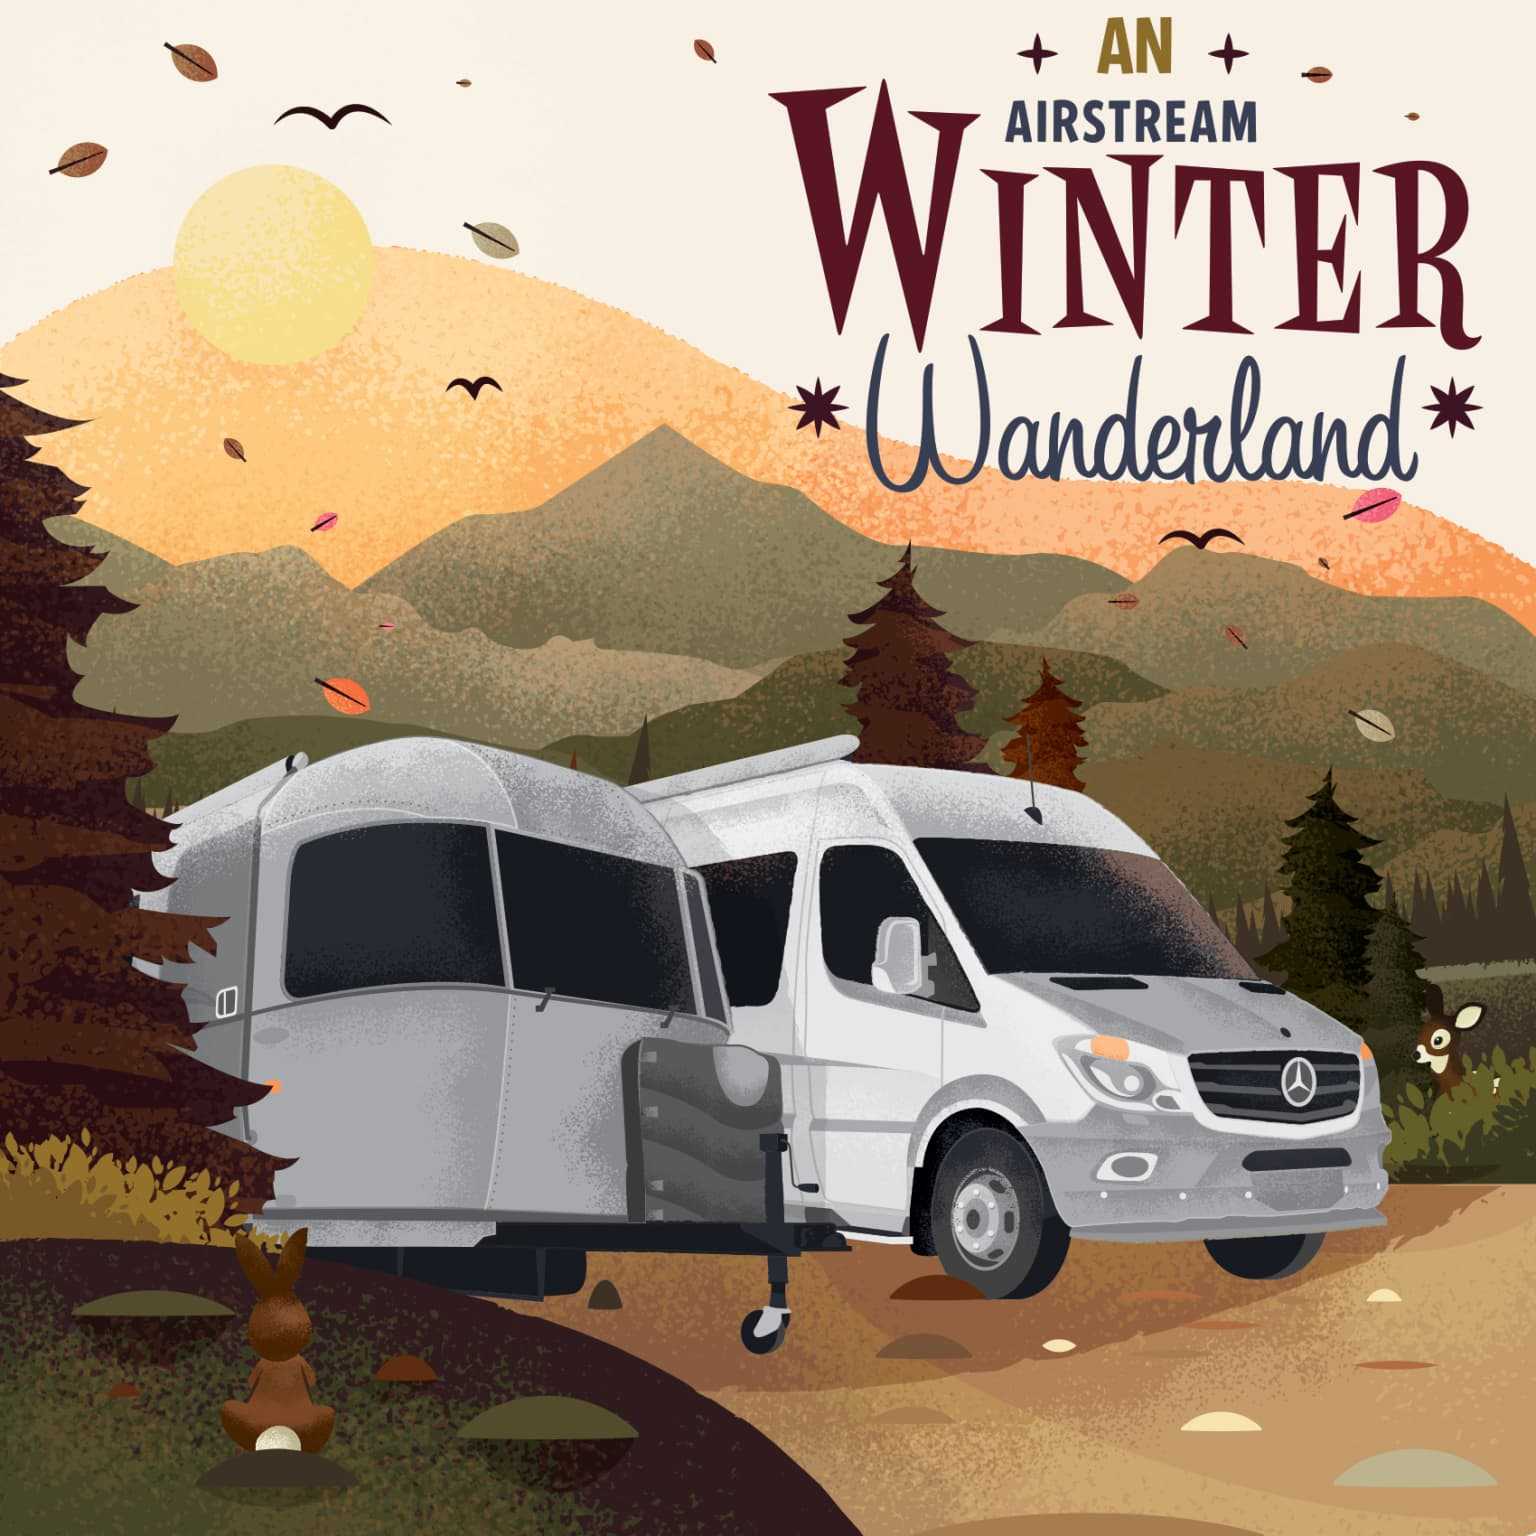 Airstream Winter Wonderland